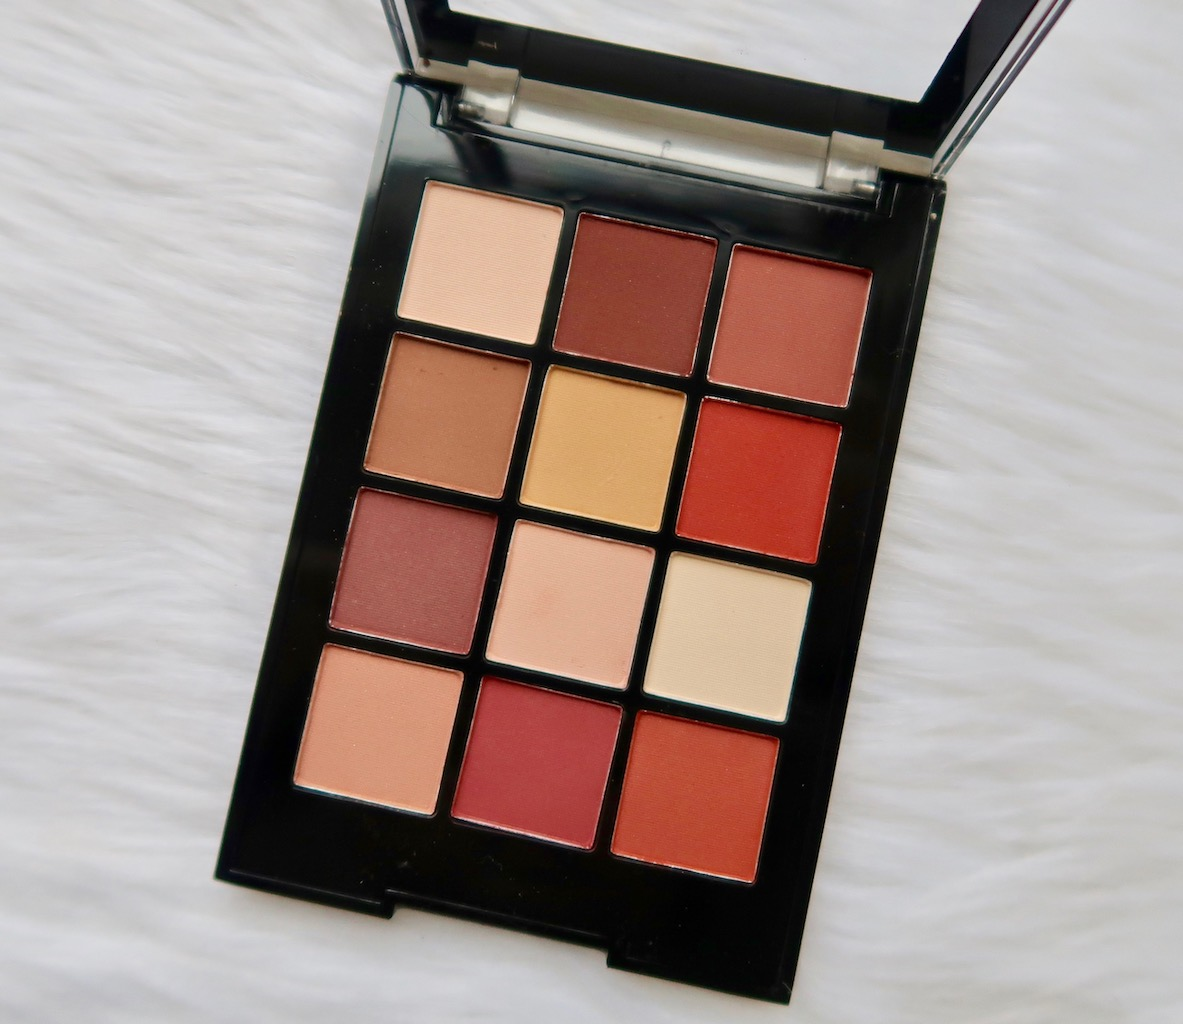 Ever Bilena Eyeshadow Palette Brown - The Cover Letter For